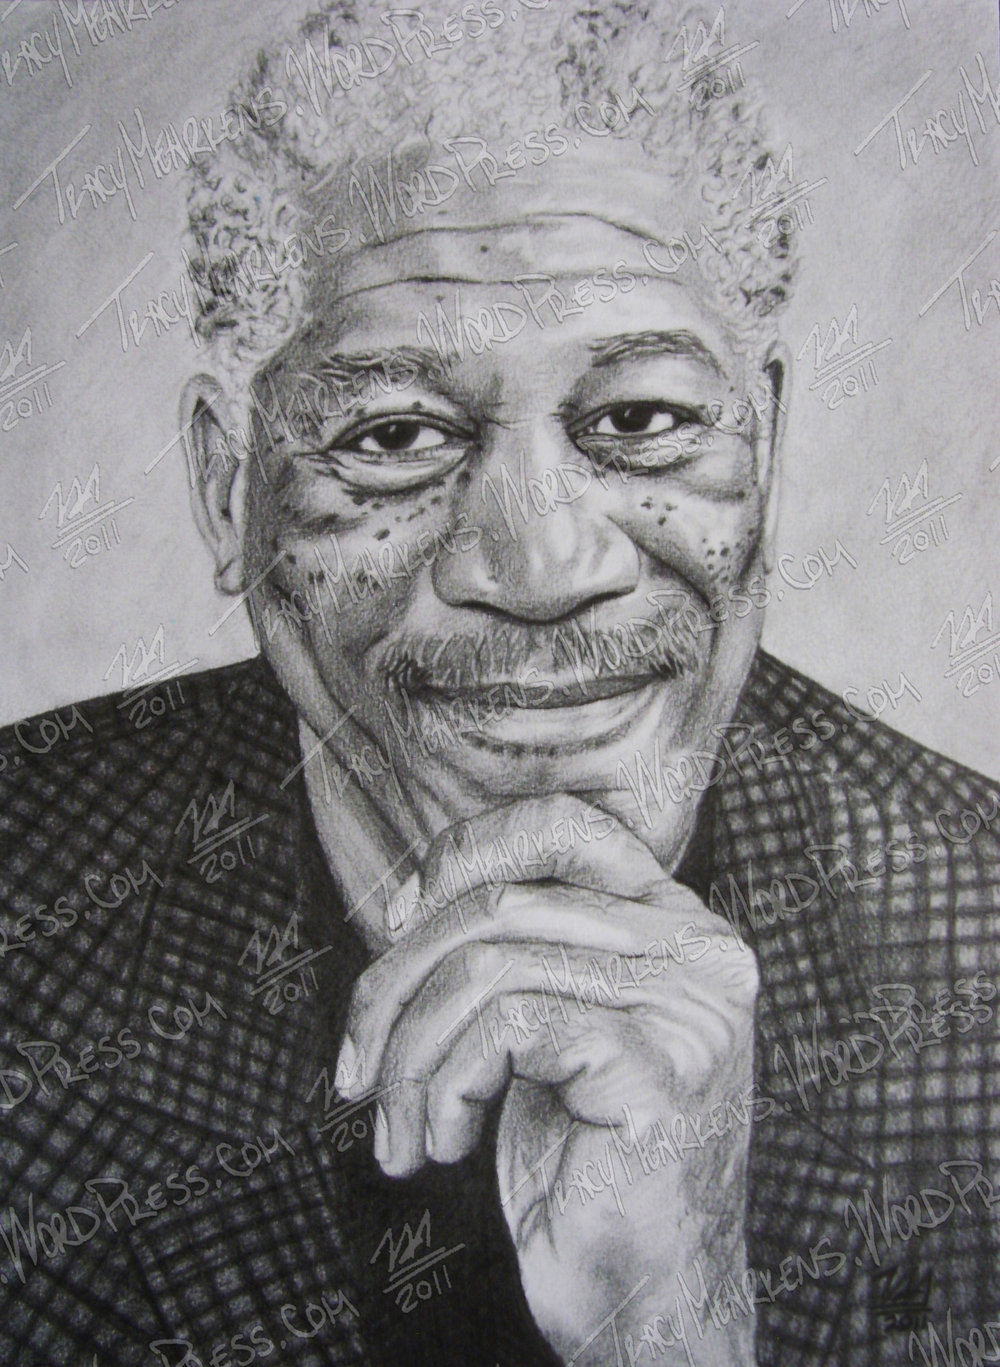 Morgan Freeman. Graphite on Paper. 7.75x10.5 in. 2011.